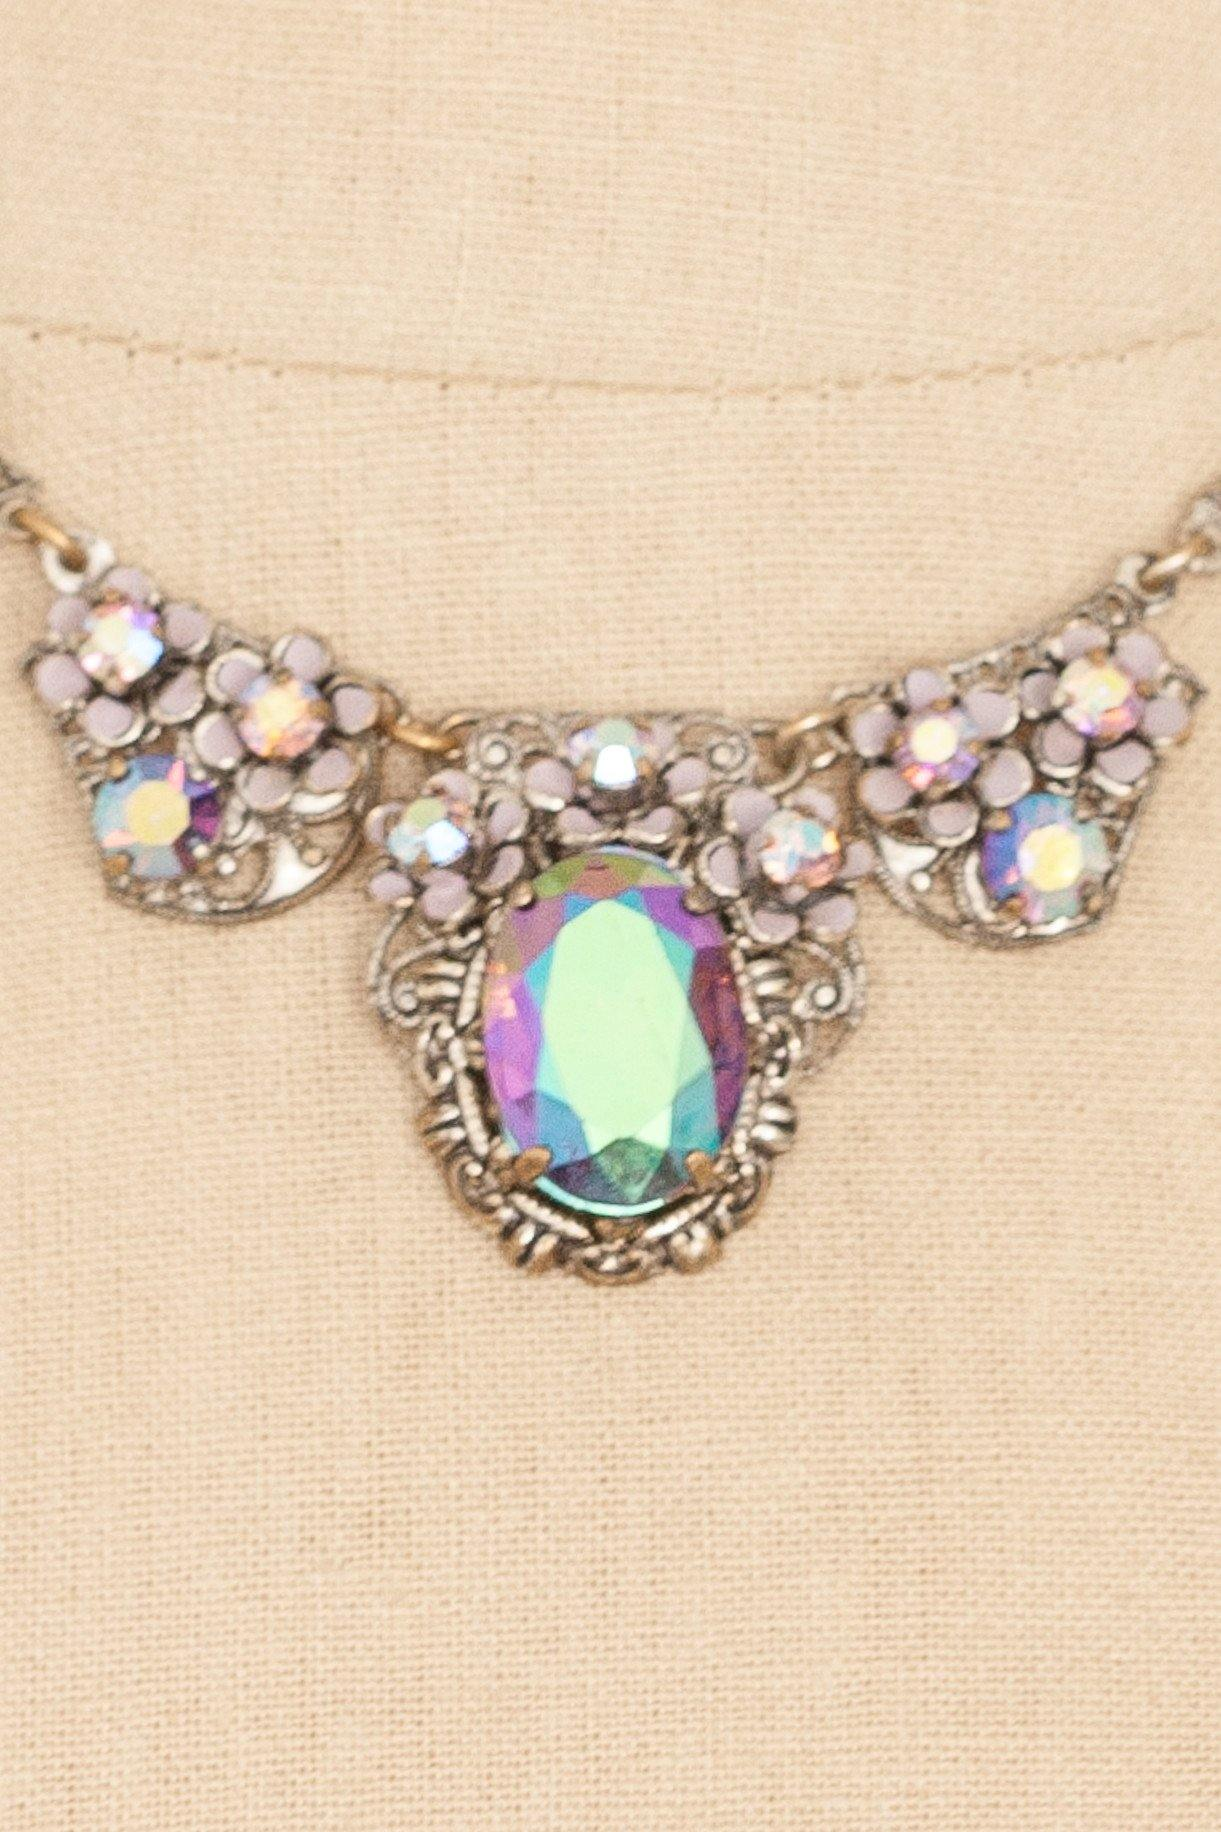 50's__Vintage__Iridescent Rhinestone Floral Necklace